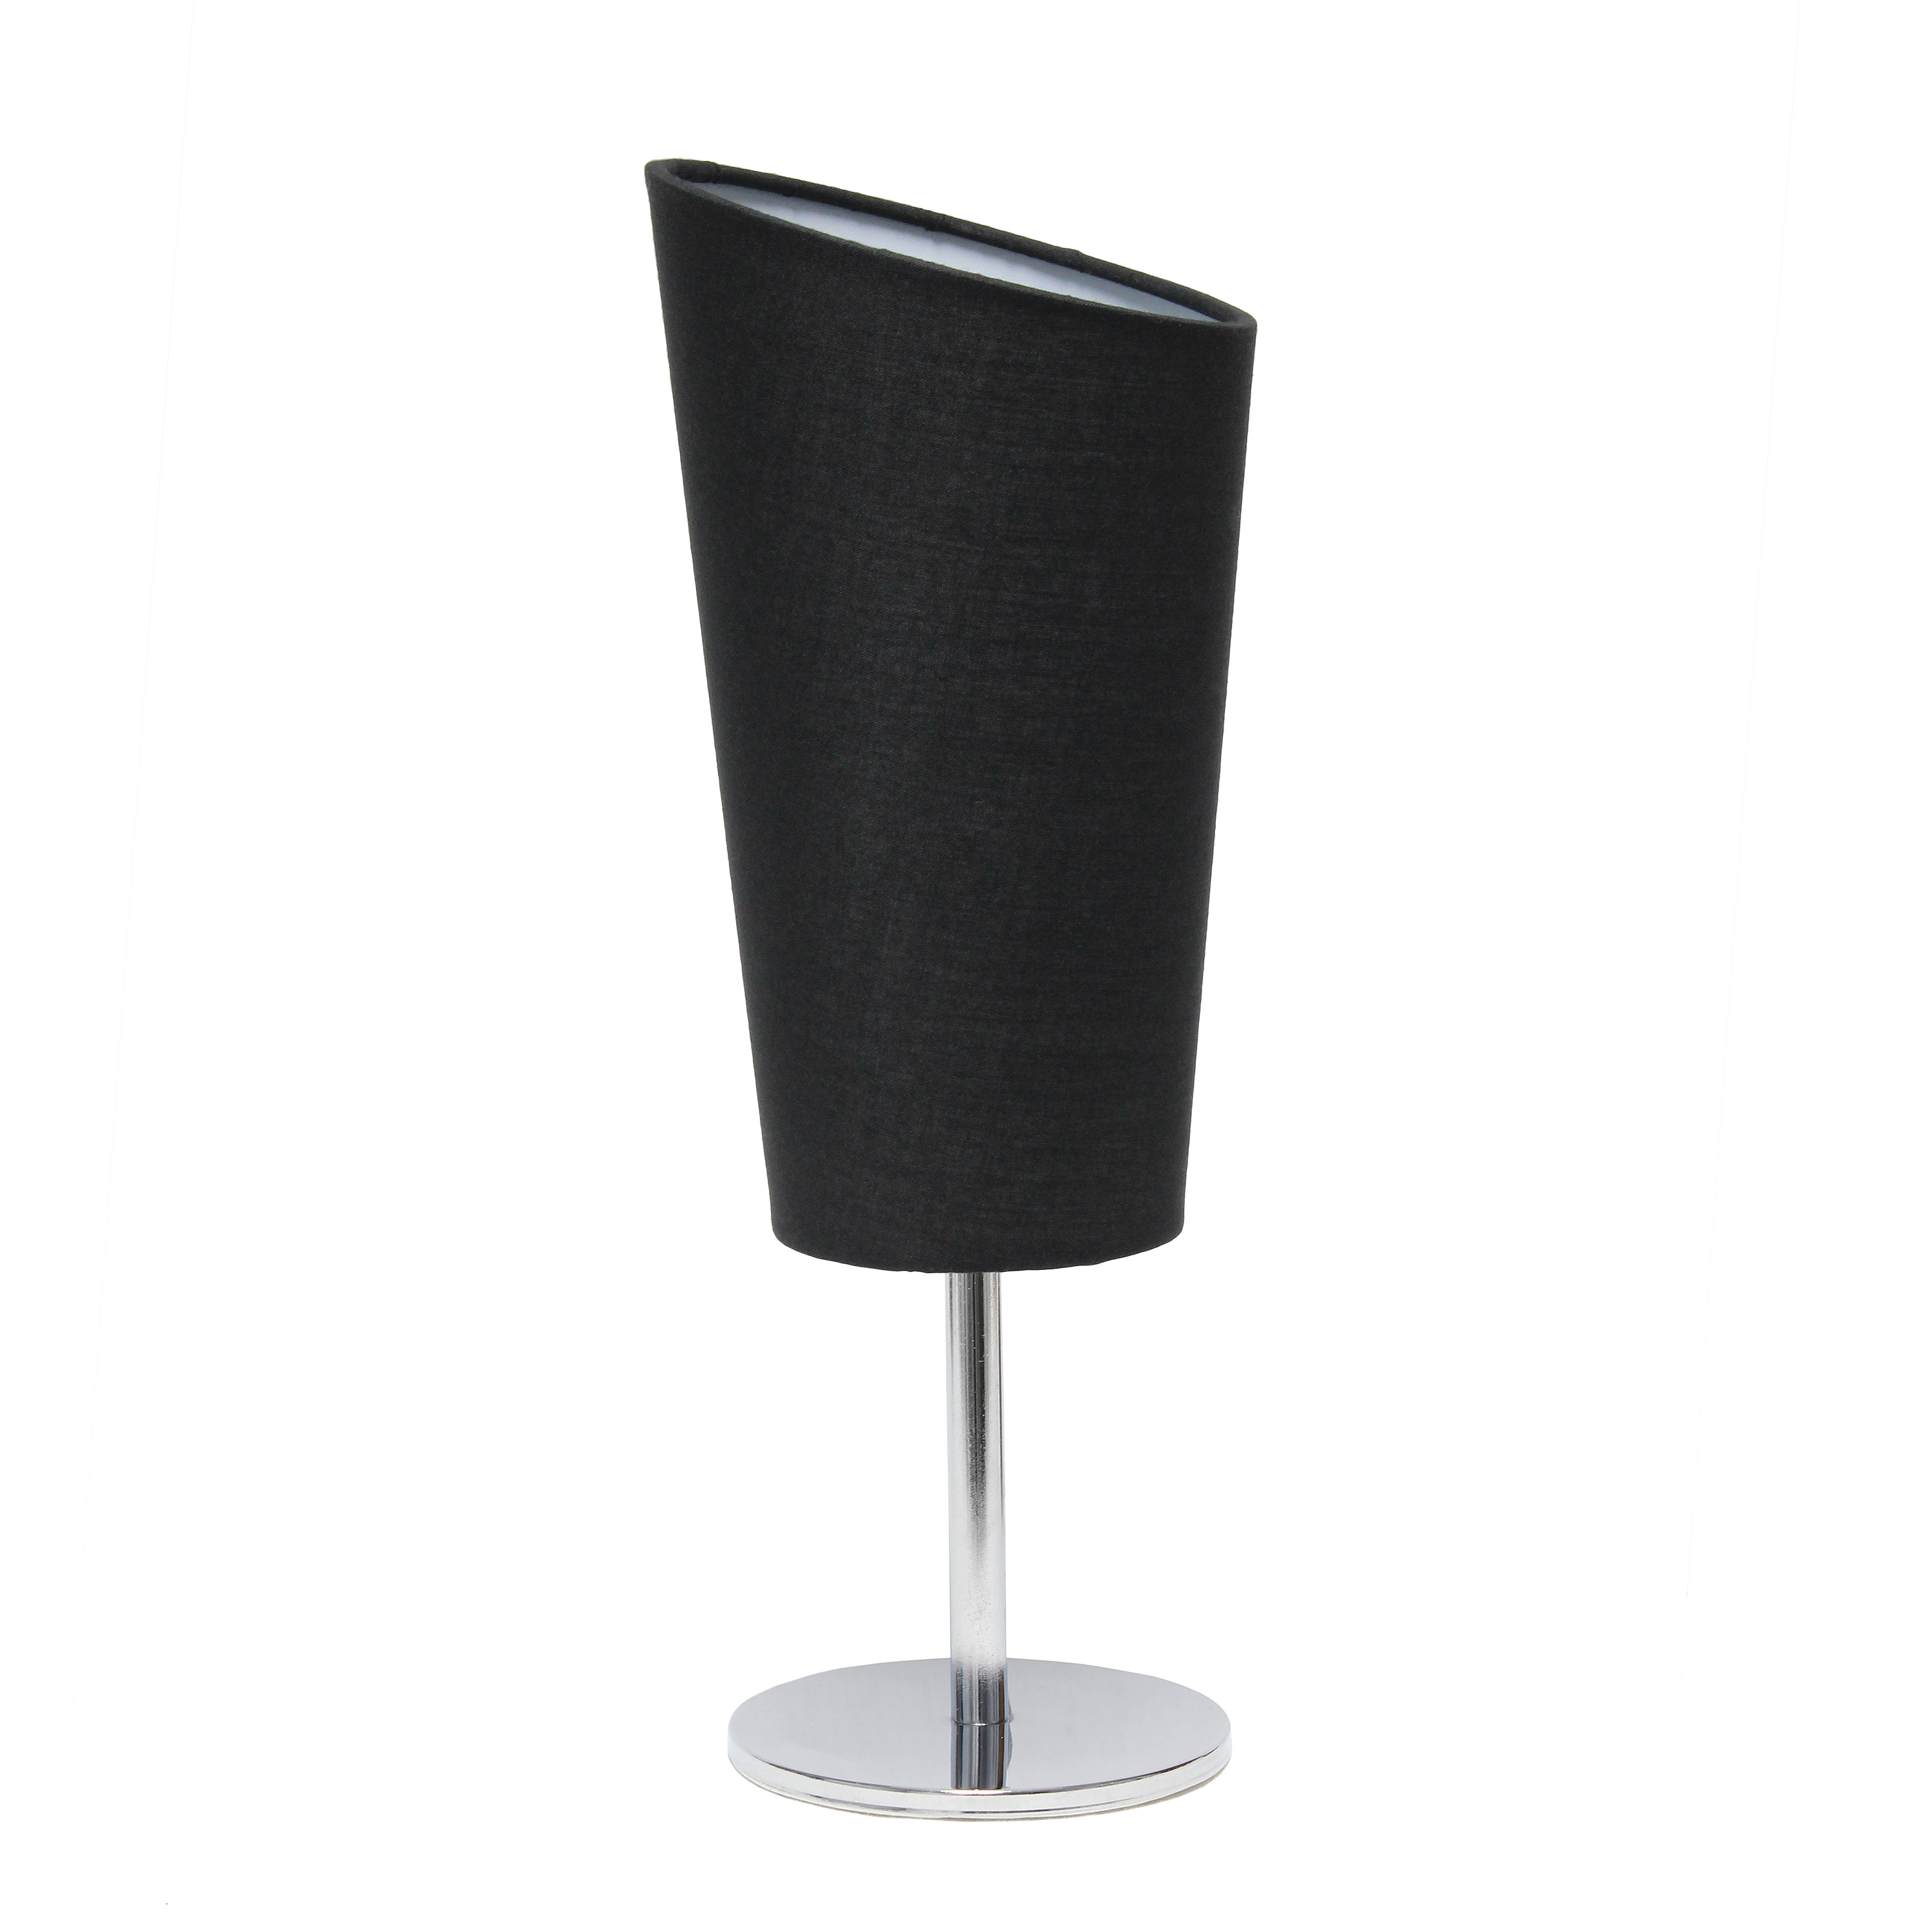 Simple Designs Mini Chrome Table Lamp with Angled Fabric Shade